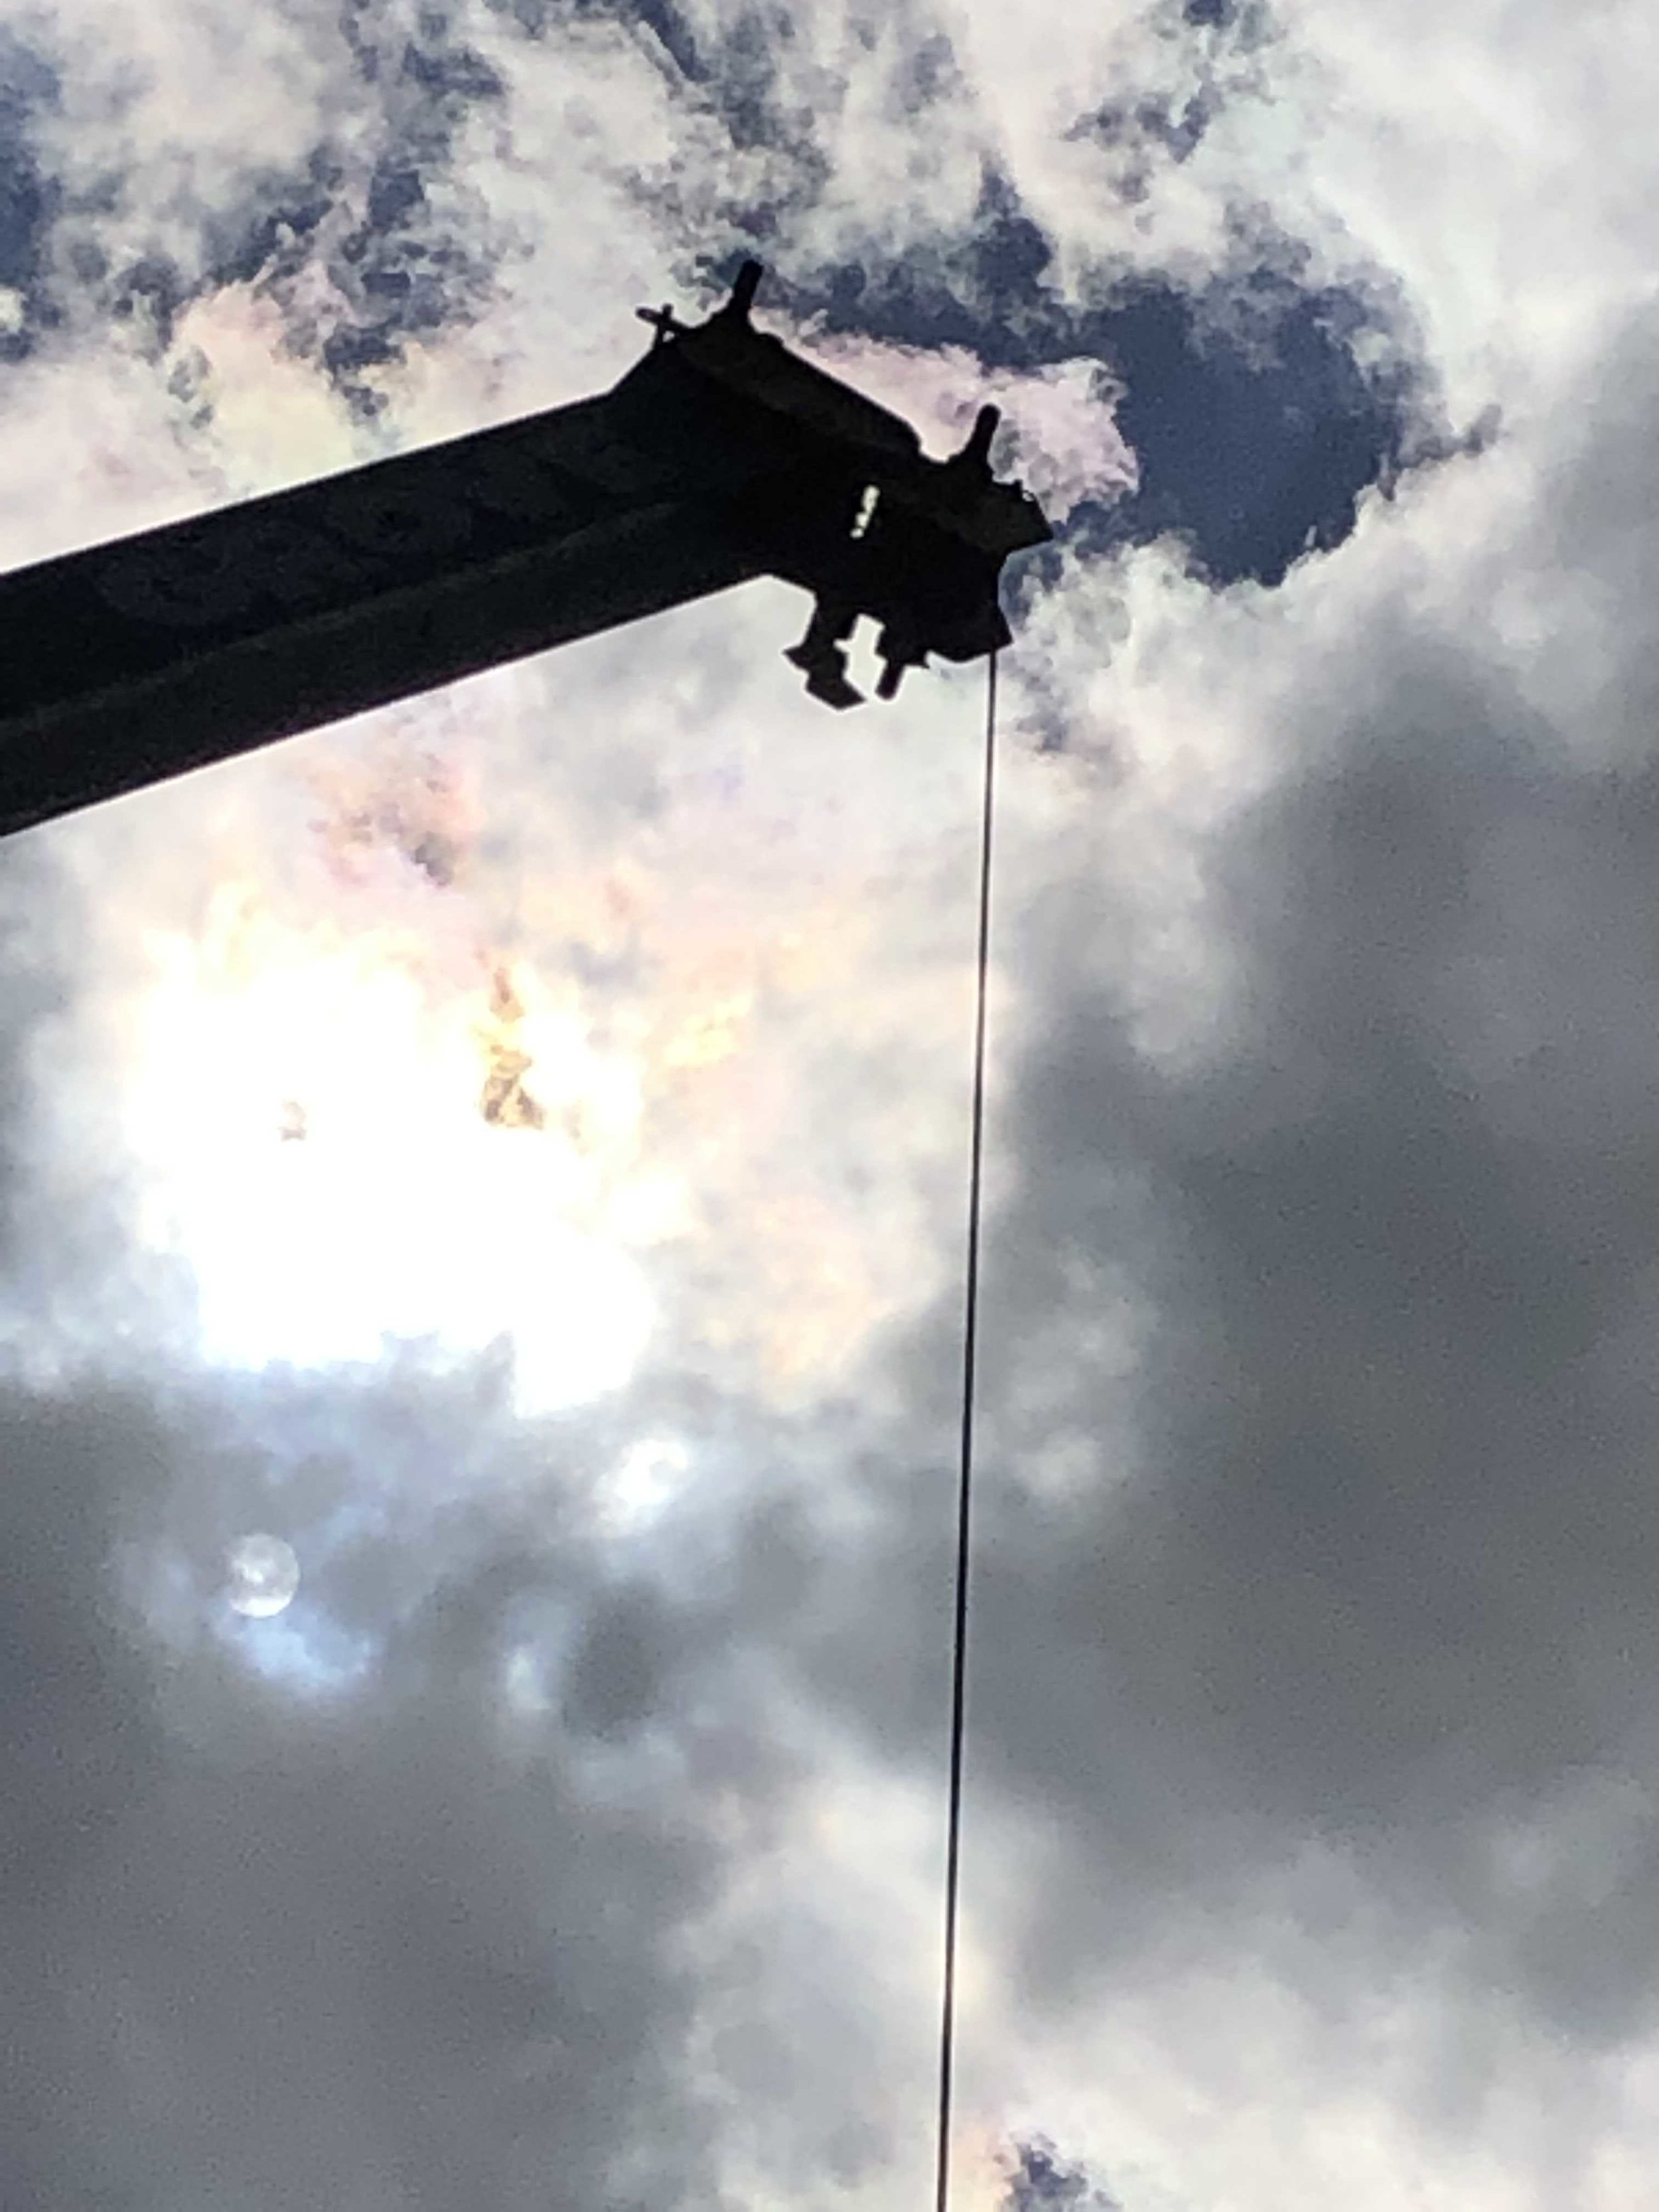 Crane service for tree removal